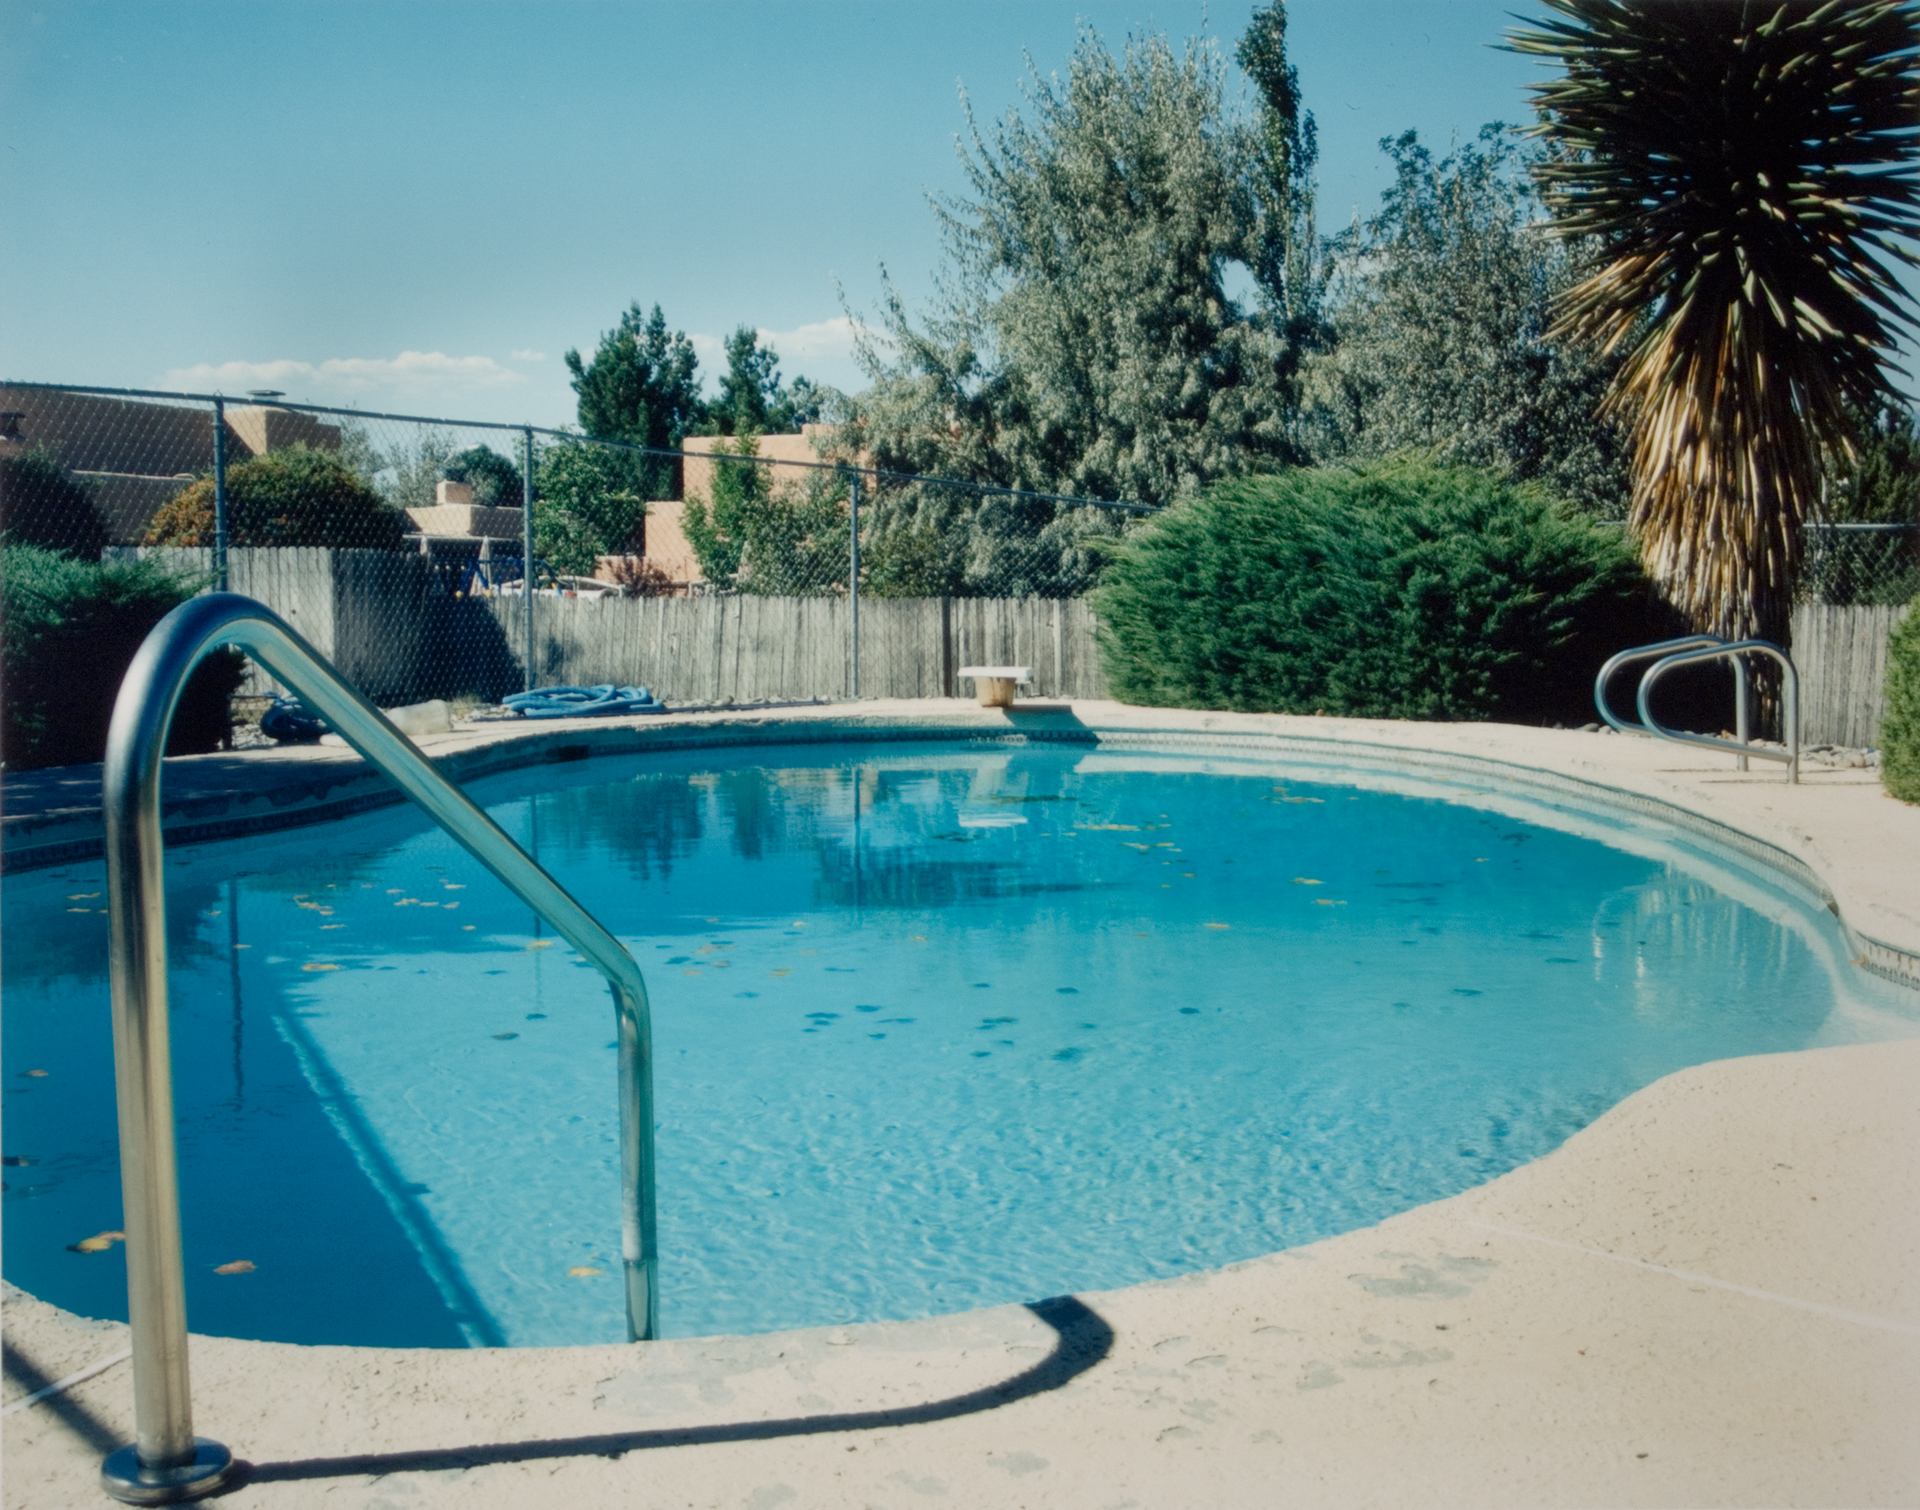 Pool 20 , Chromogenic Print, 8 x10 on 16 x 20 paper, 2001